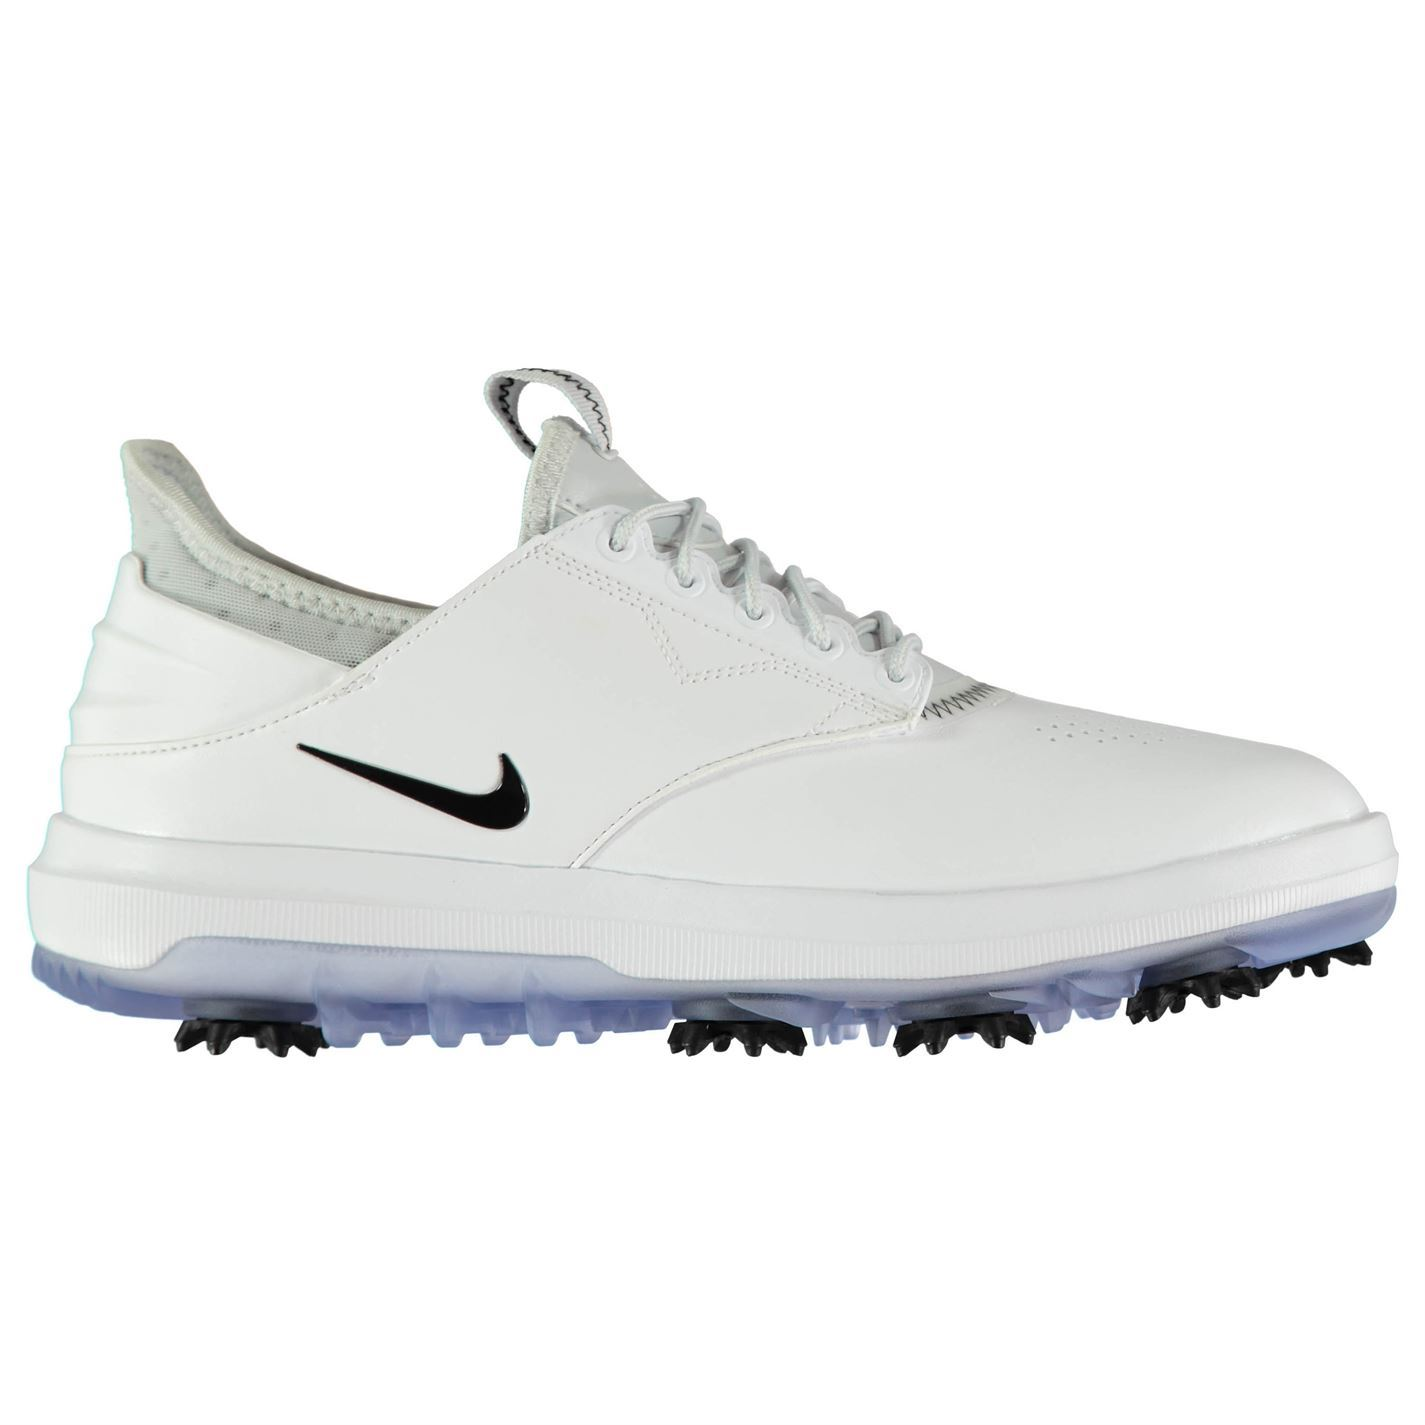 a586b84f700f ... Nike Air Zoom Direct Golf Shoes Mens Spikes Footwear